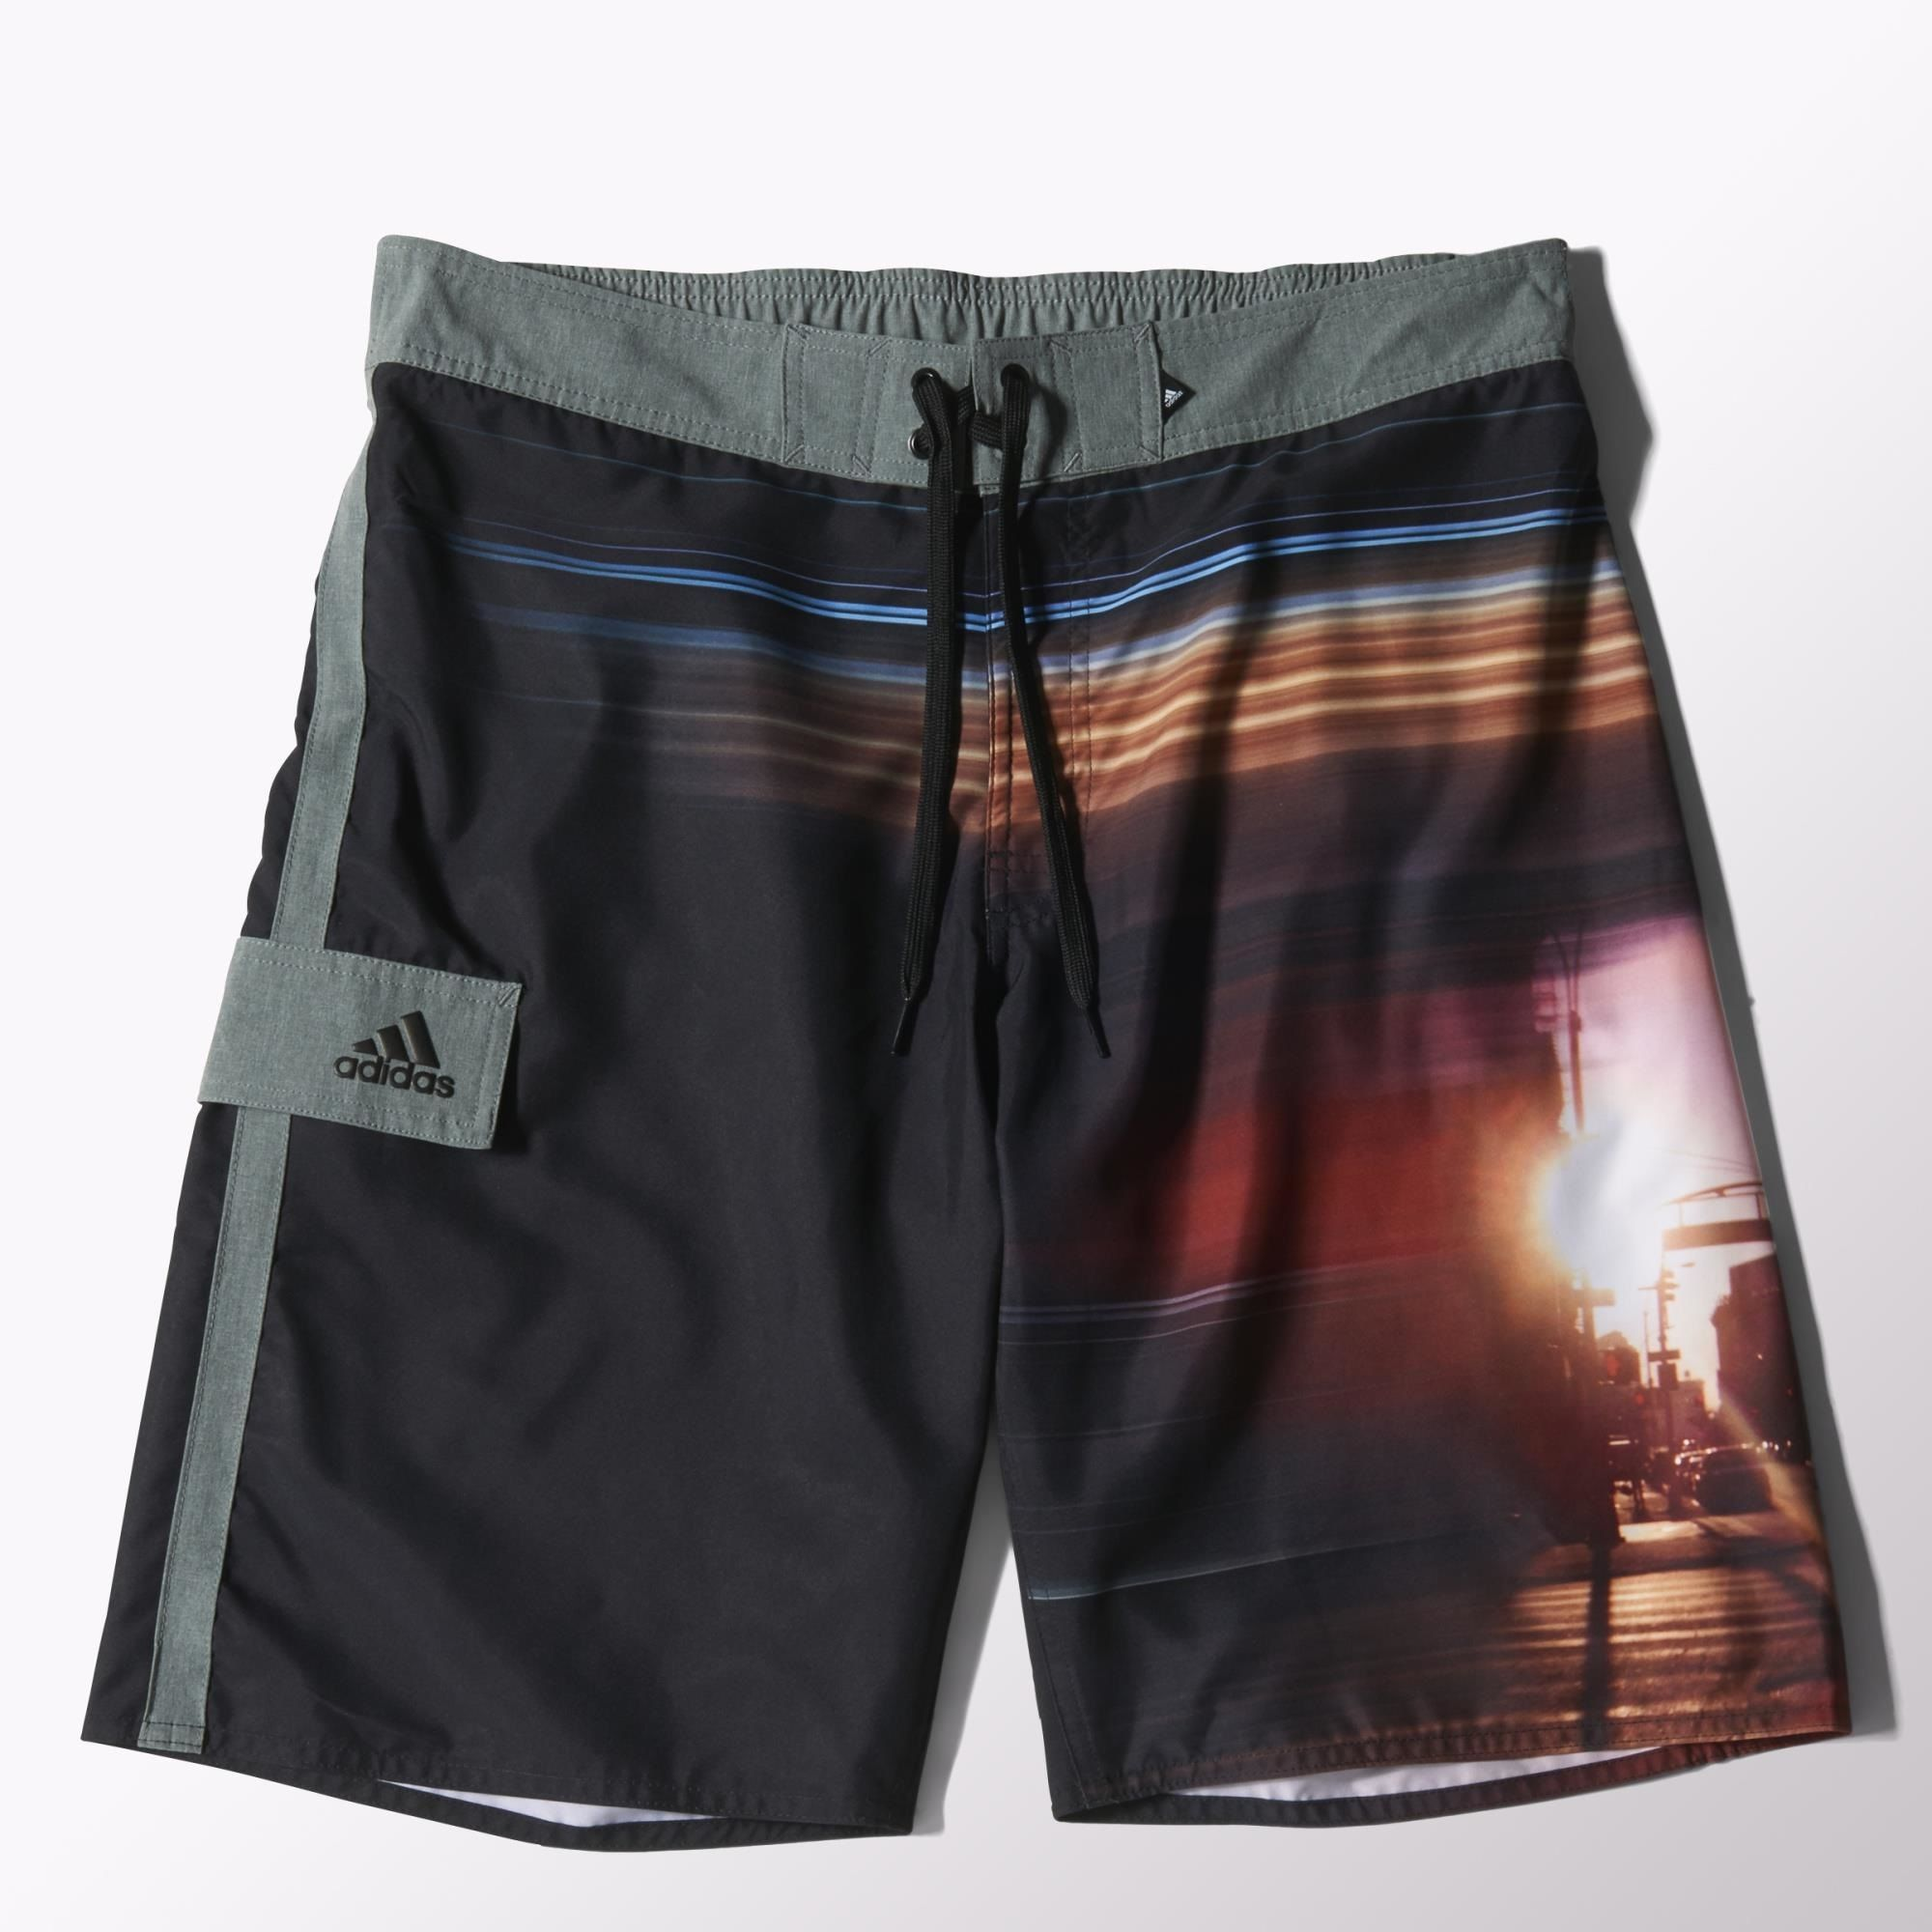 Herren Badeshort Graphic Water Shorts